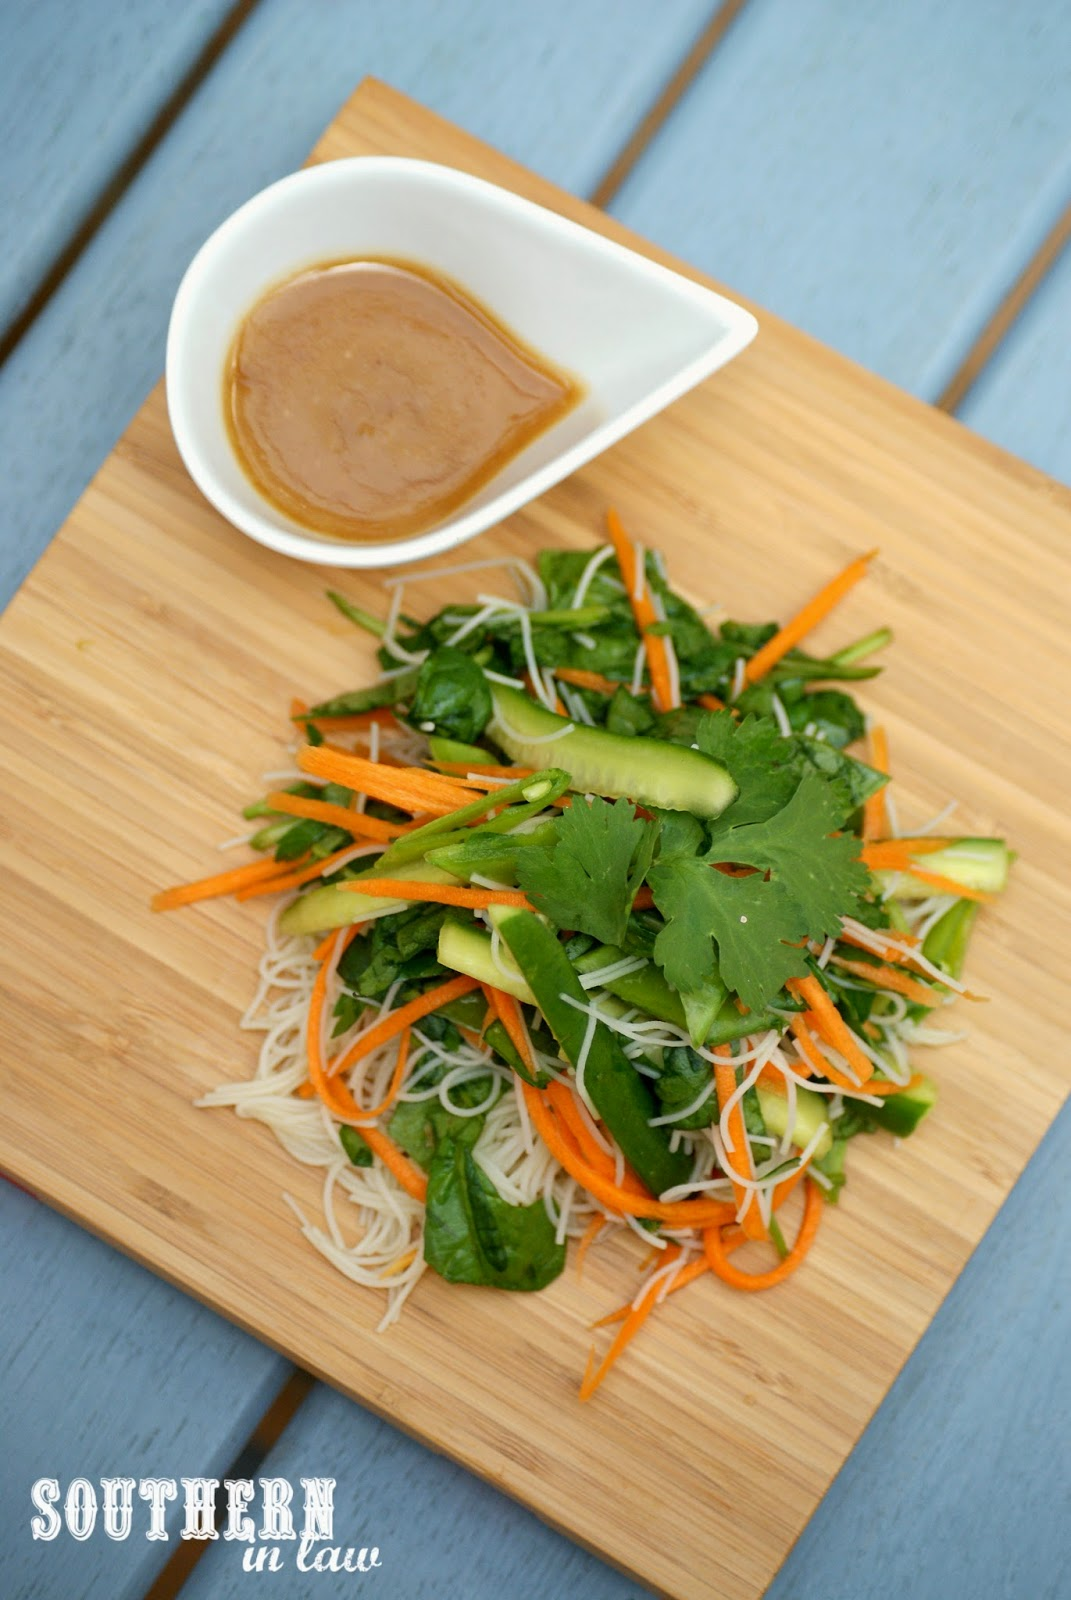 Asian Noodle Salad with Creamy Peanut Dressing Recipe - low fat, gluten free, clean eating friendly, vegan, vegetarian, easy salads, impressive side dishes